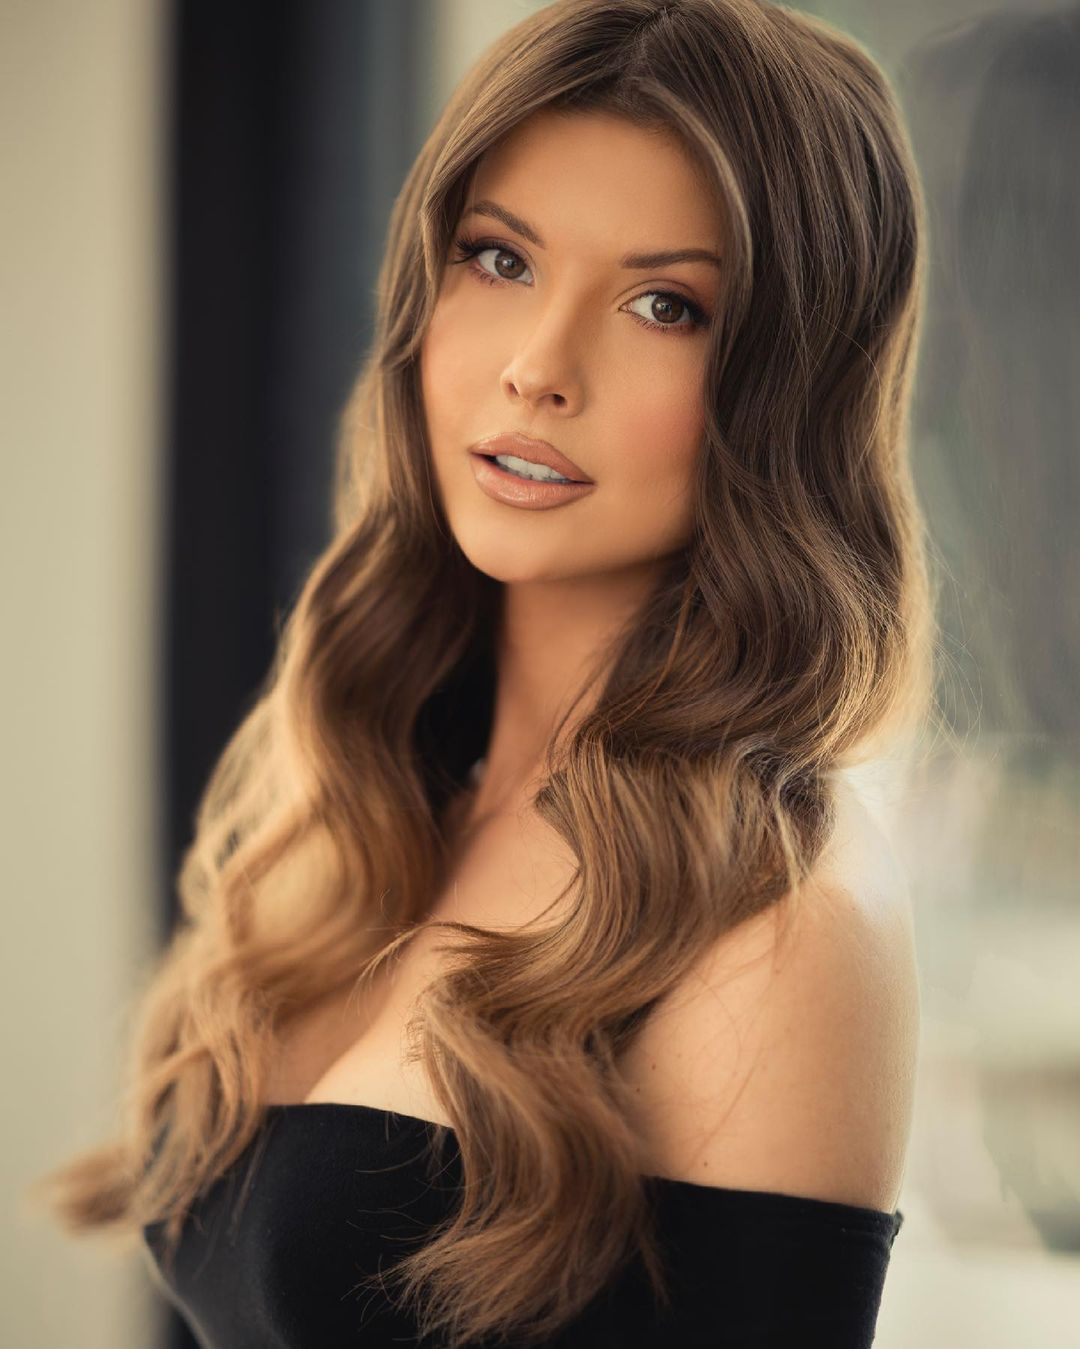 Hot photos of Playboy model and actress Amanda Cerny will take your breath away 1